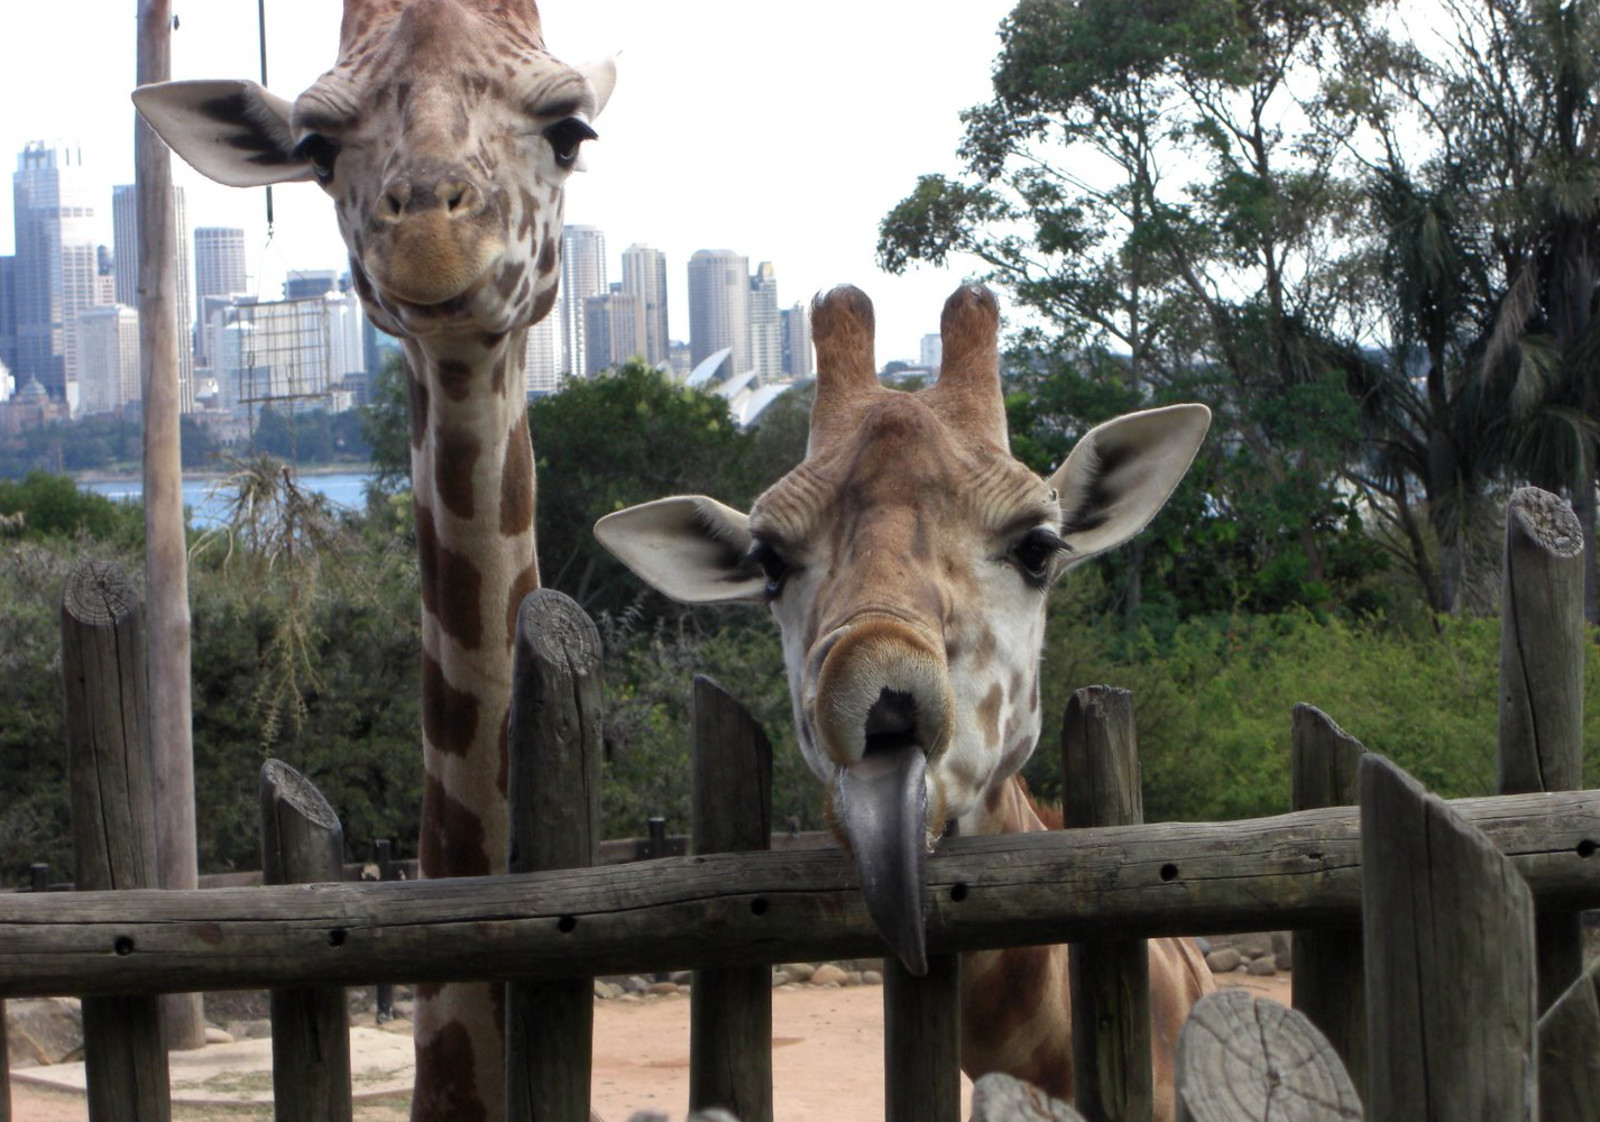 Not Into Zoos? Get Close to Animals and Nature With These Exciting Alternatives